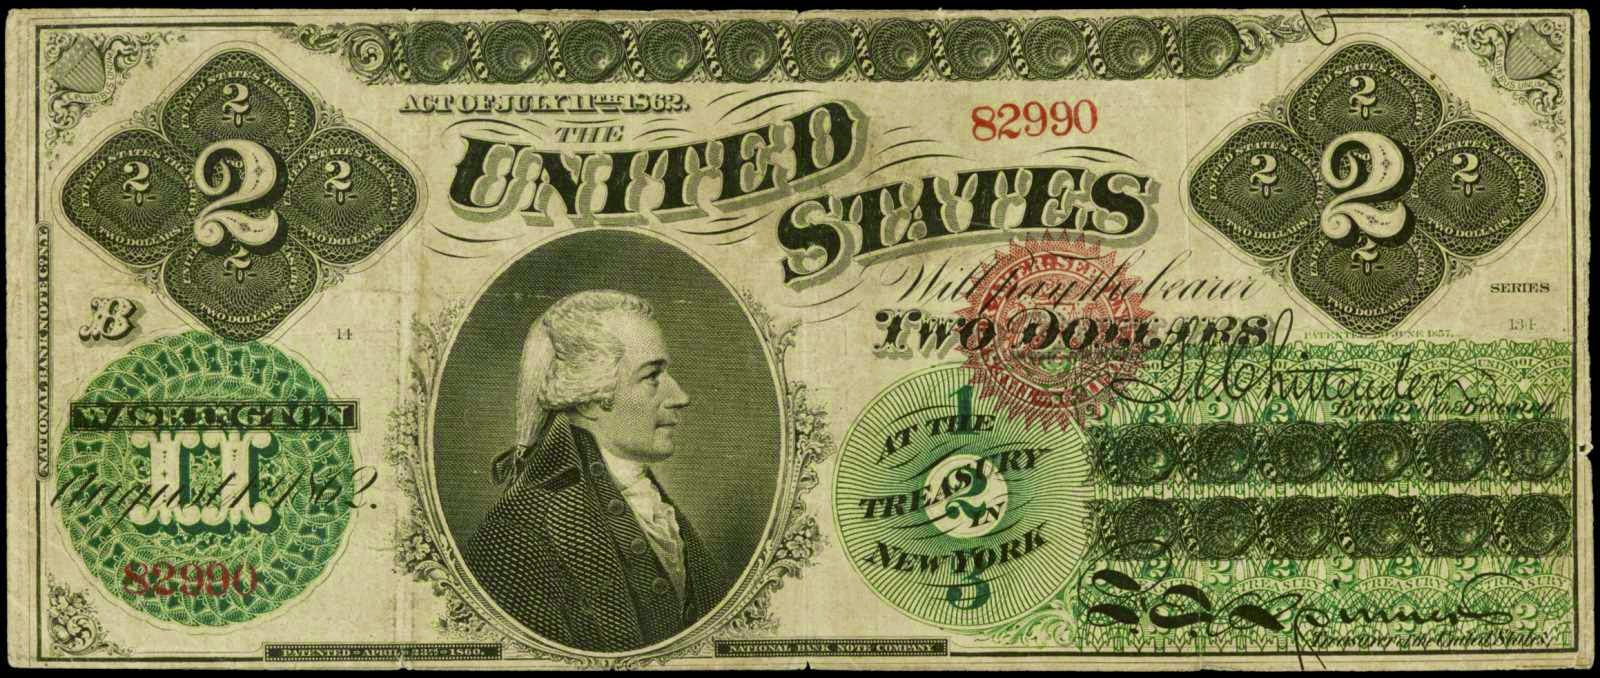 United States 1862 2 Dollar bill Hamilton